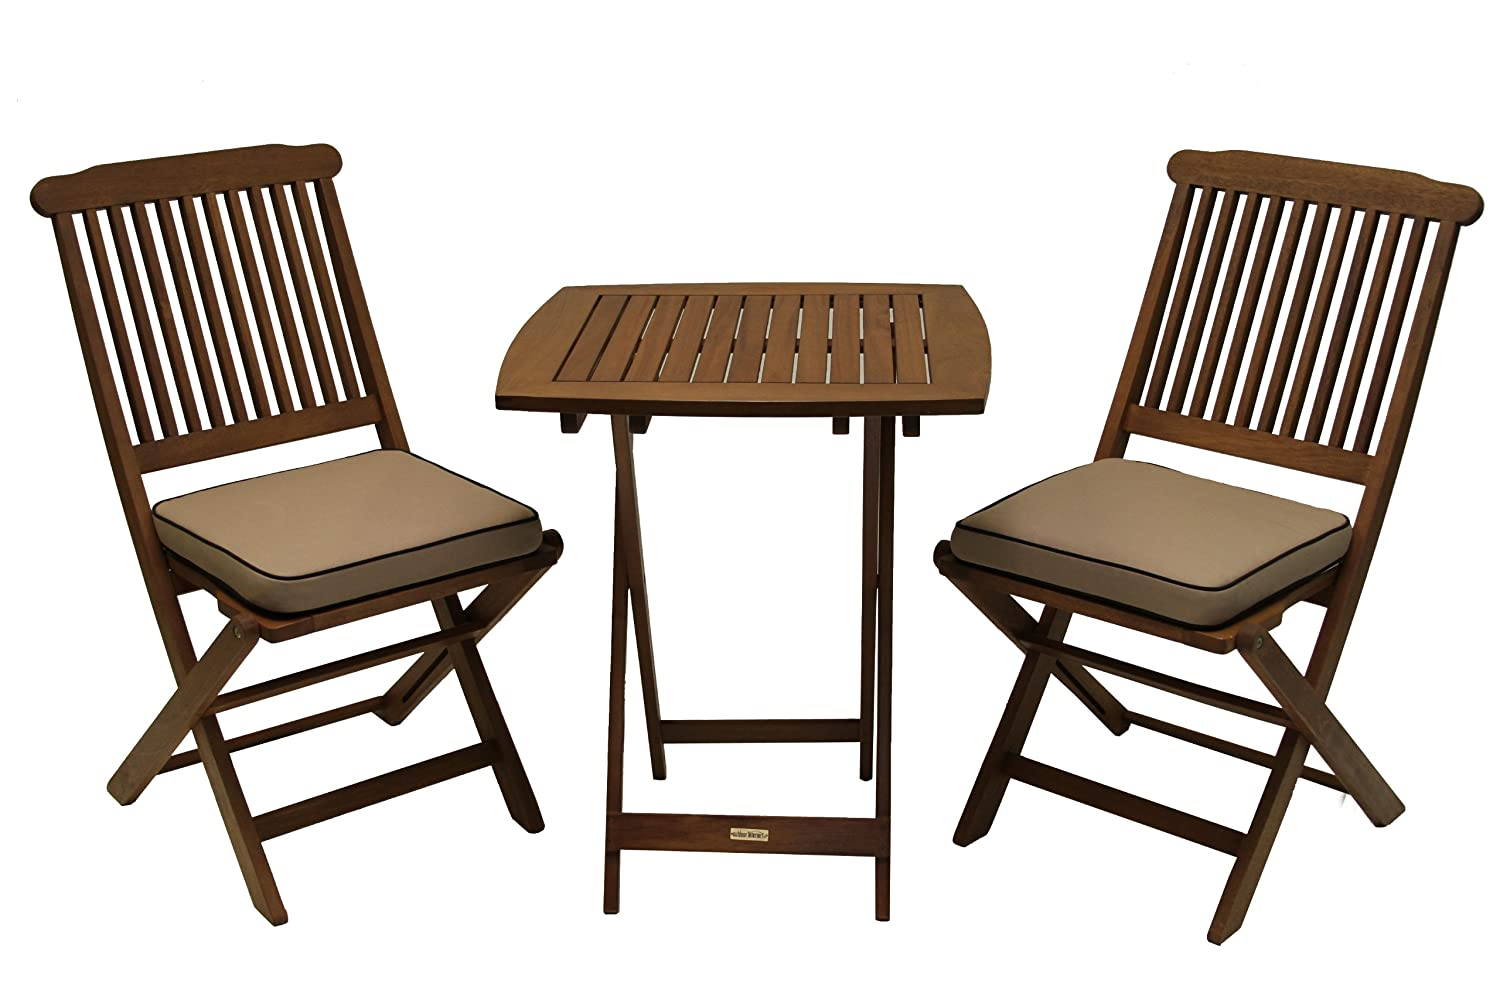 Wood patio furniture sets at the galleria for Lawn and garden furniture